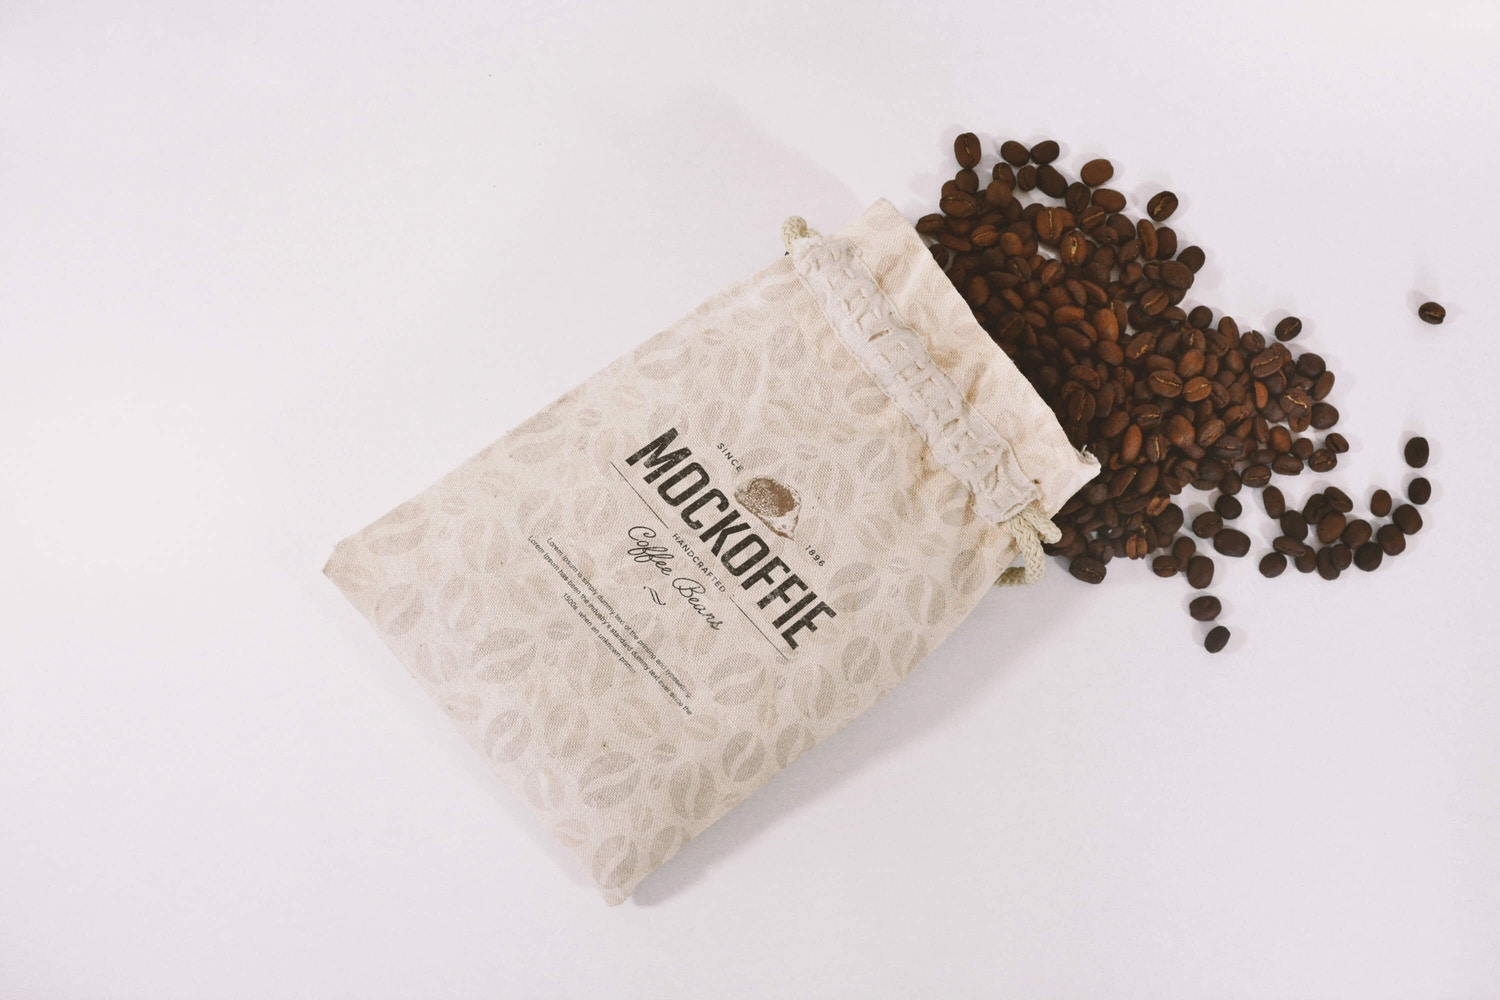 Jute Coffee Bag Mockup by Eduardo Mejia on Original Mockups